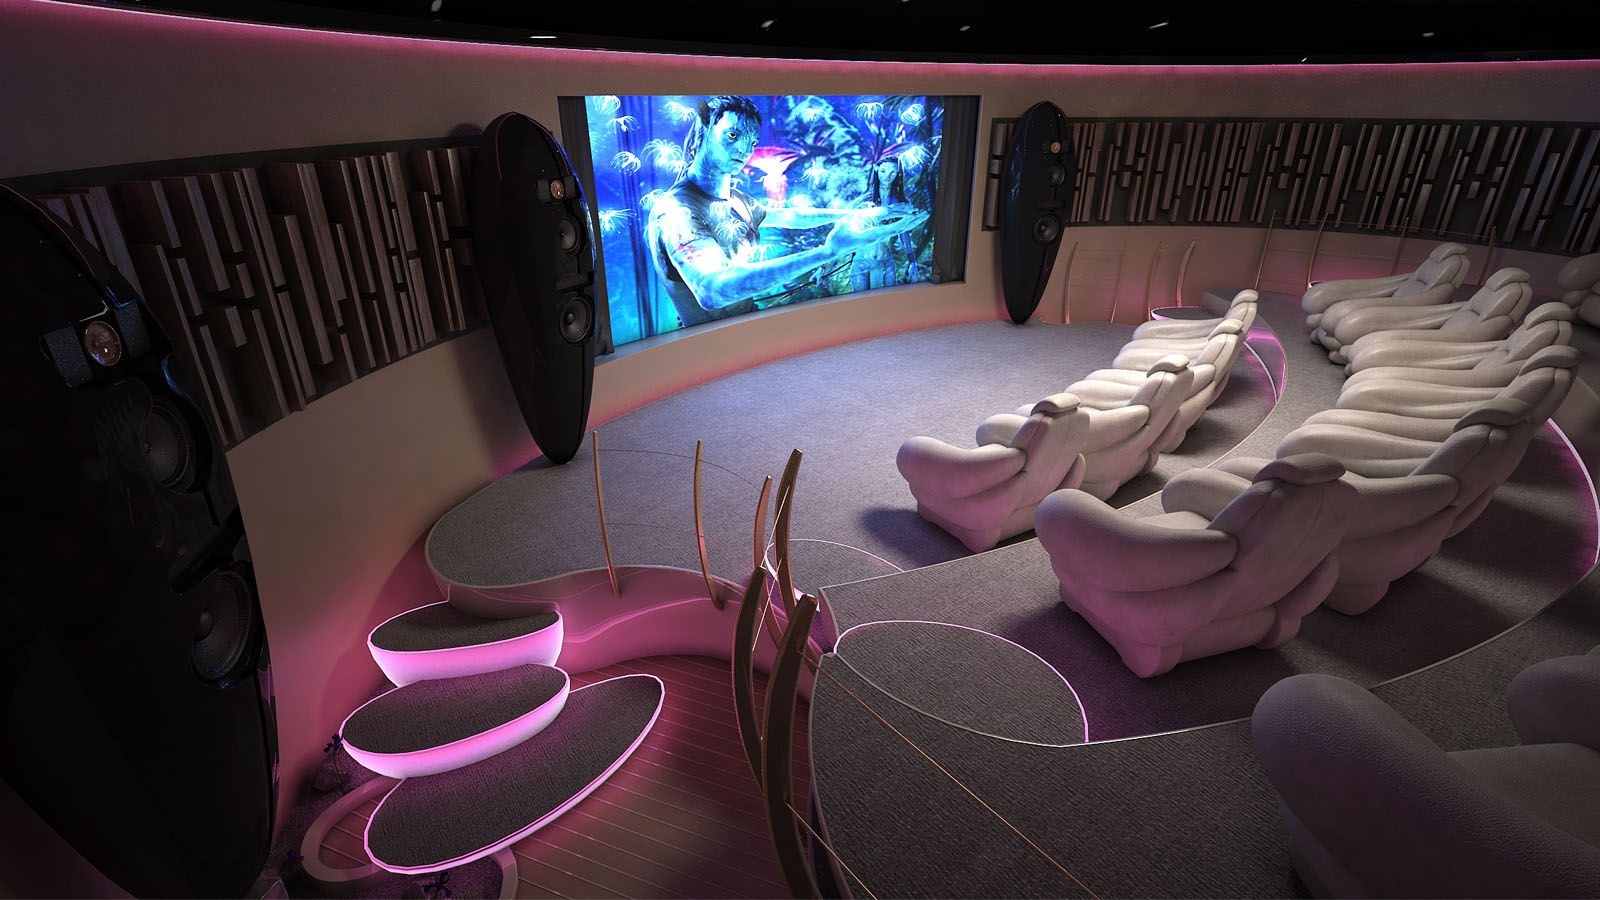 Le cin ma maison ce que vous devez savoir room cinema for Luxury home theater rooms